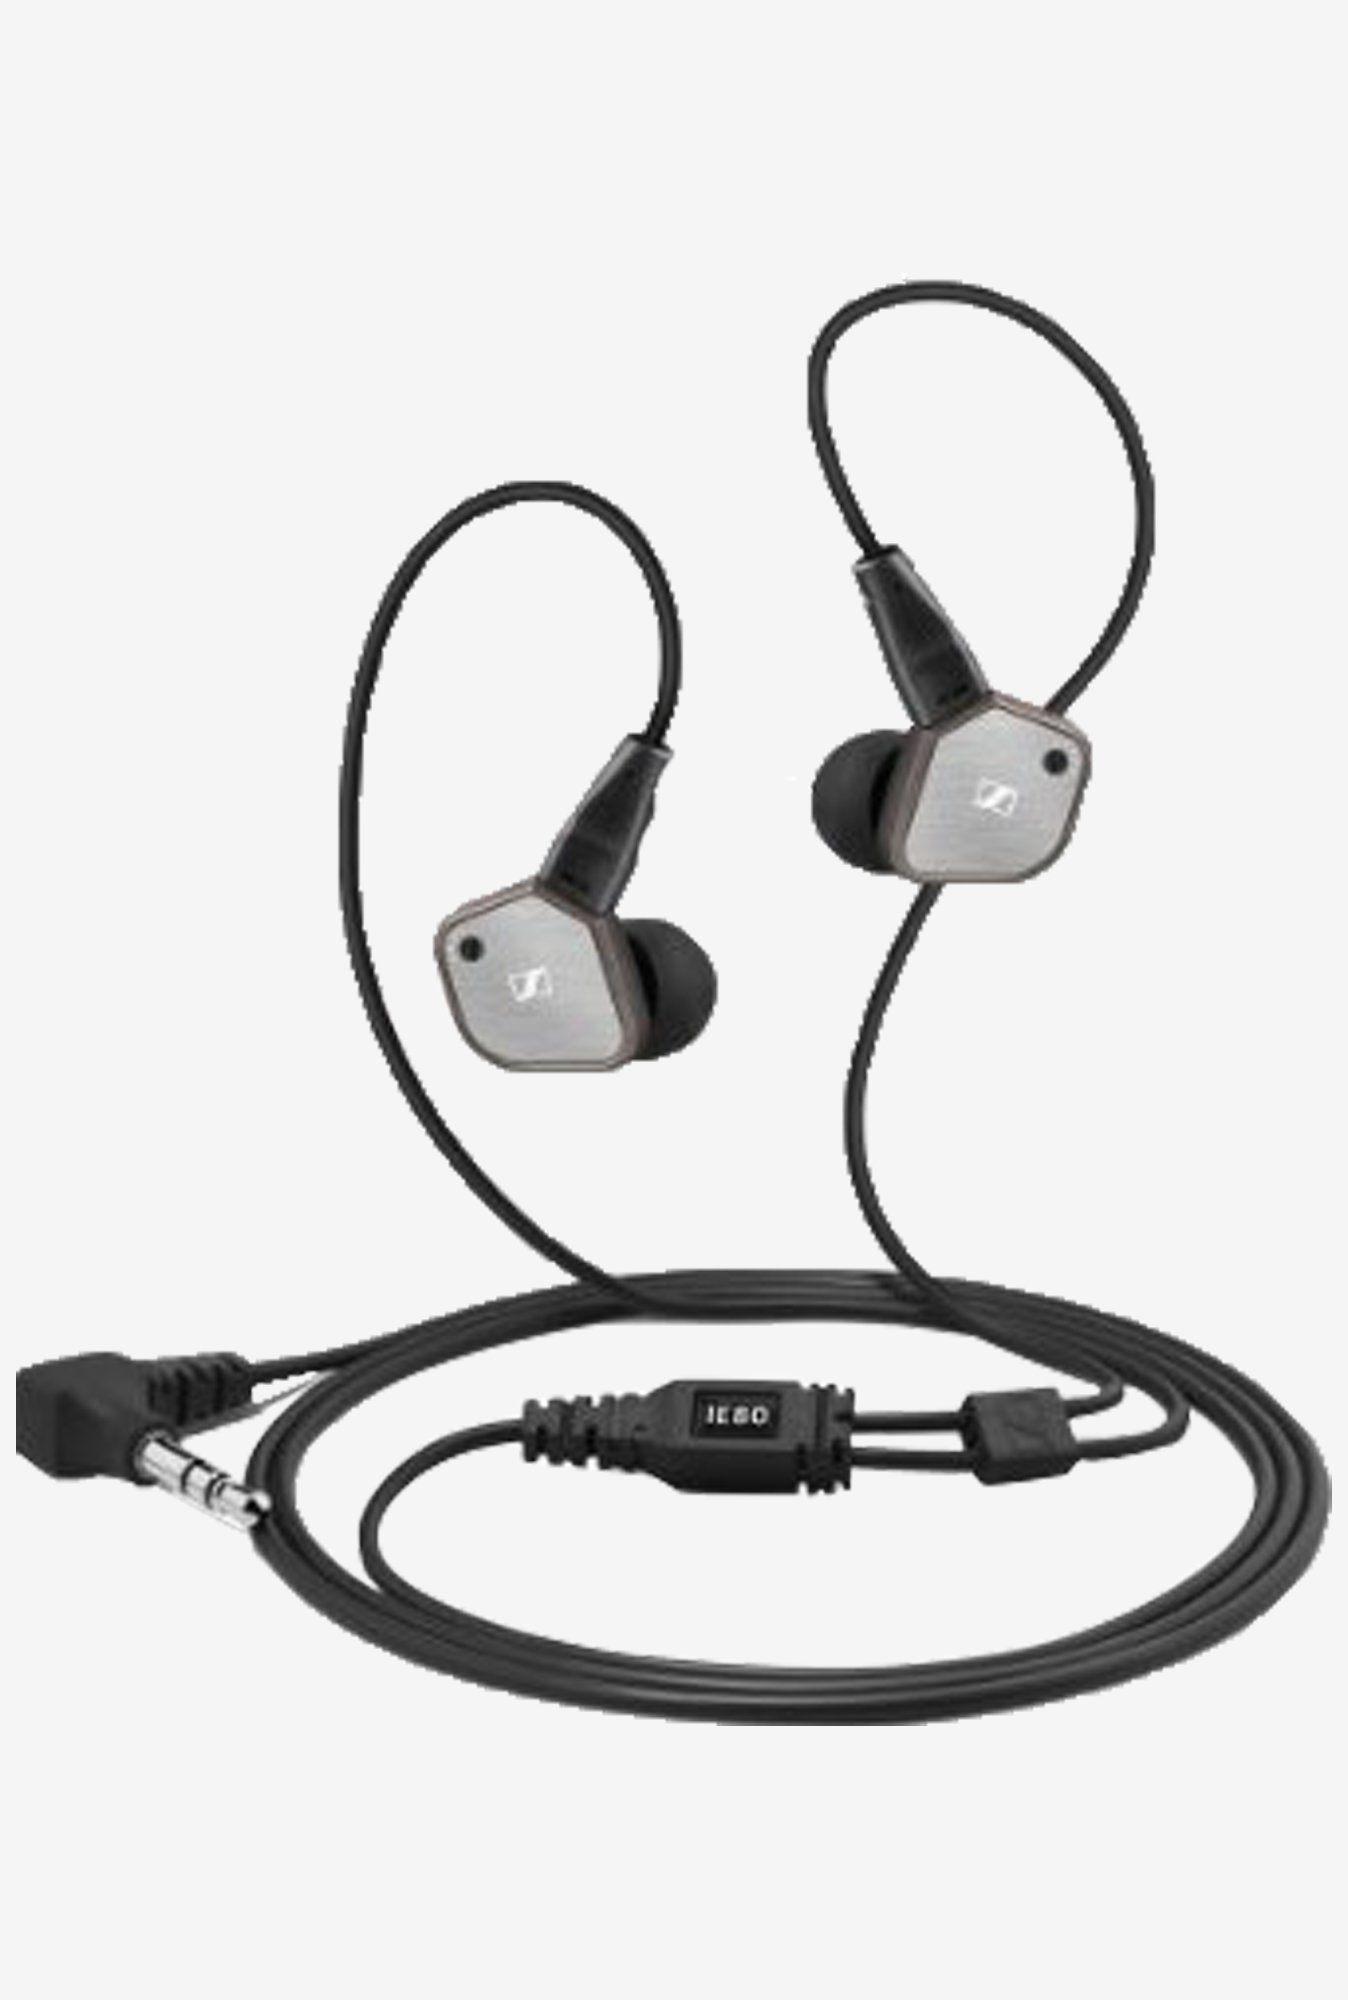 Sennheiser IE 80 In-Ear Headphone (Black)